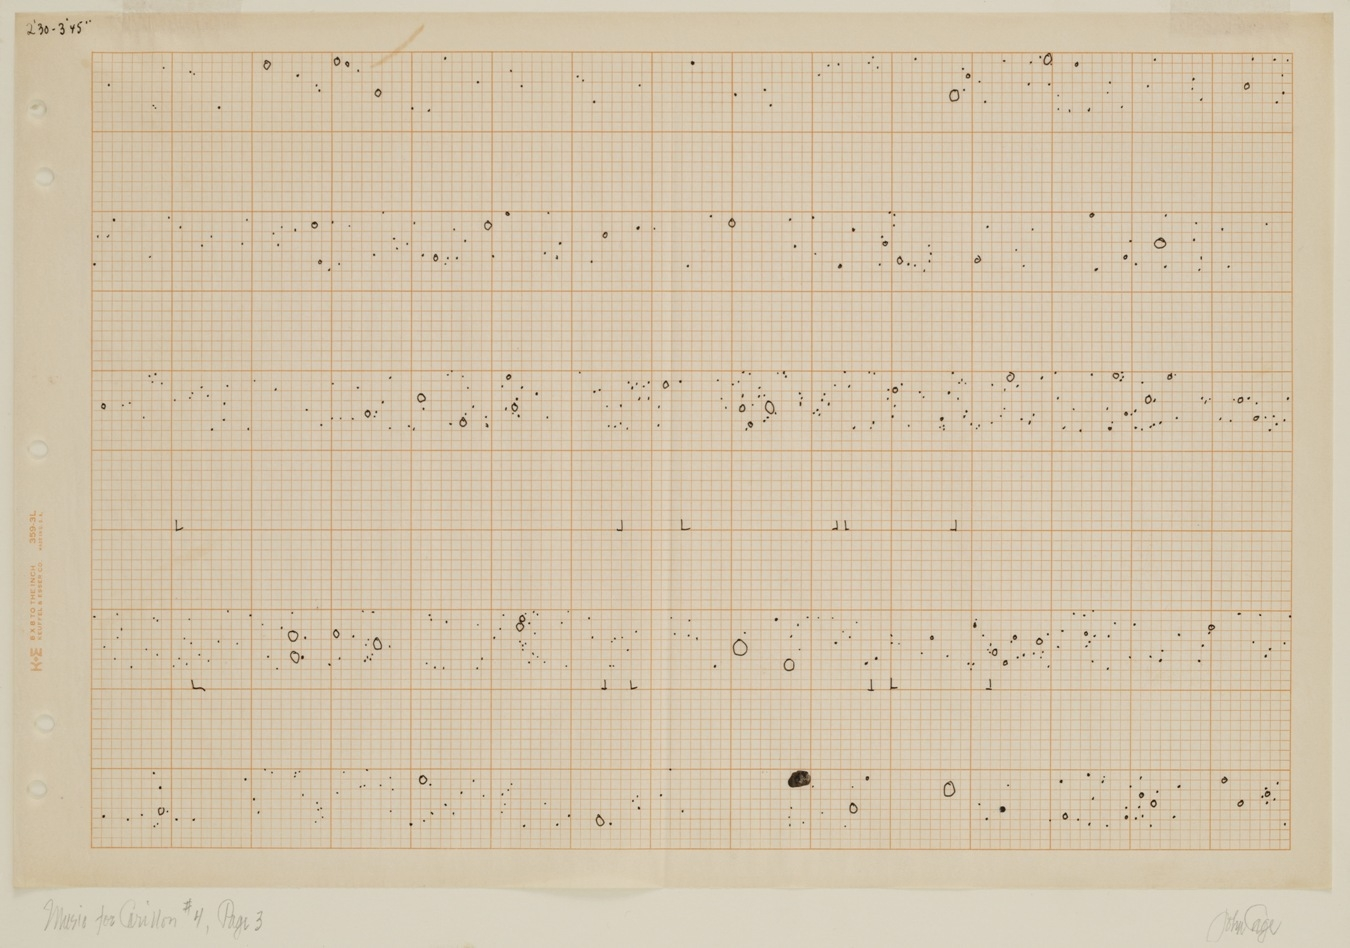 Music for Carillon, # 4, Page 3 - 1961 image